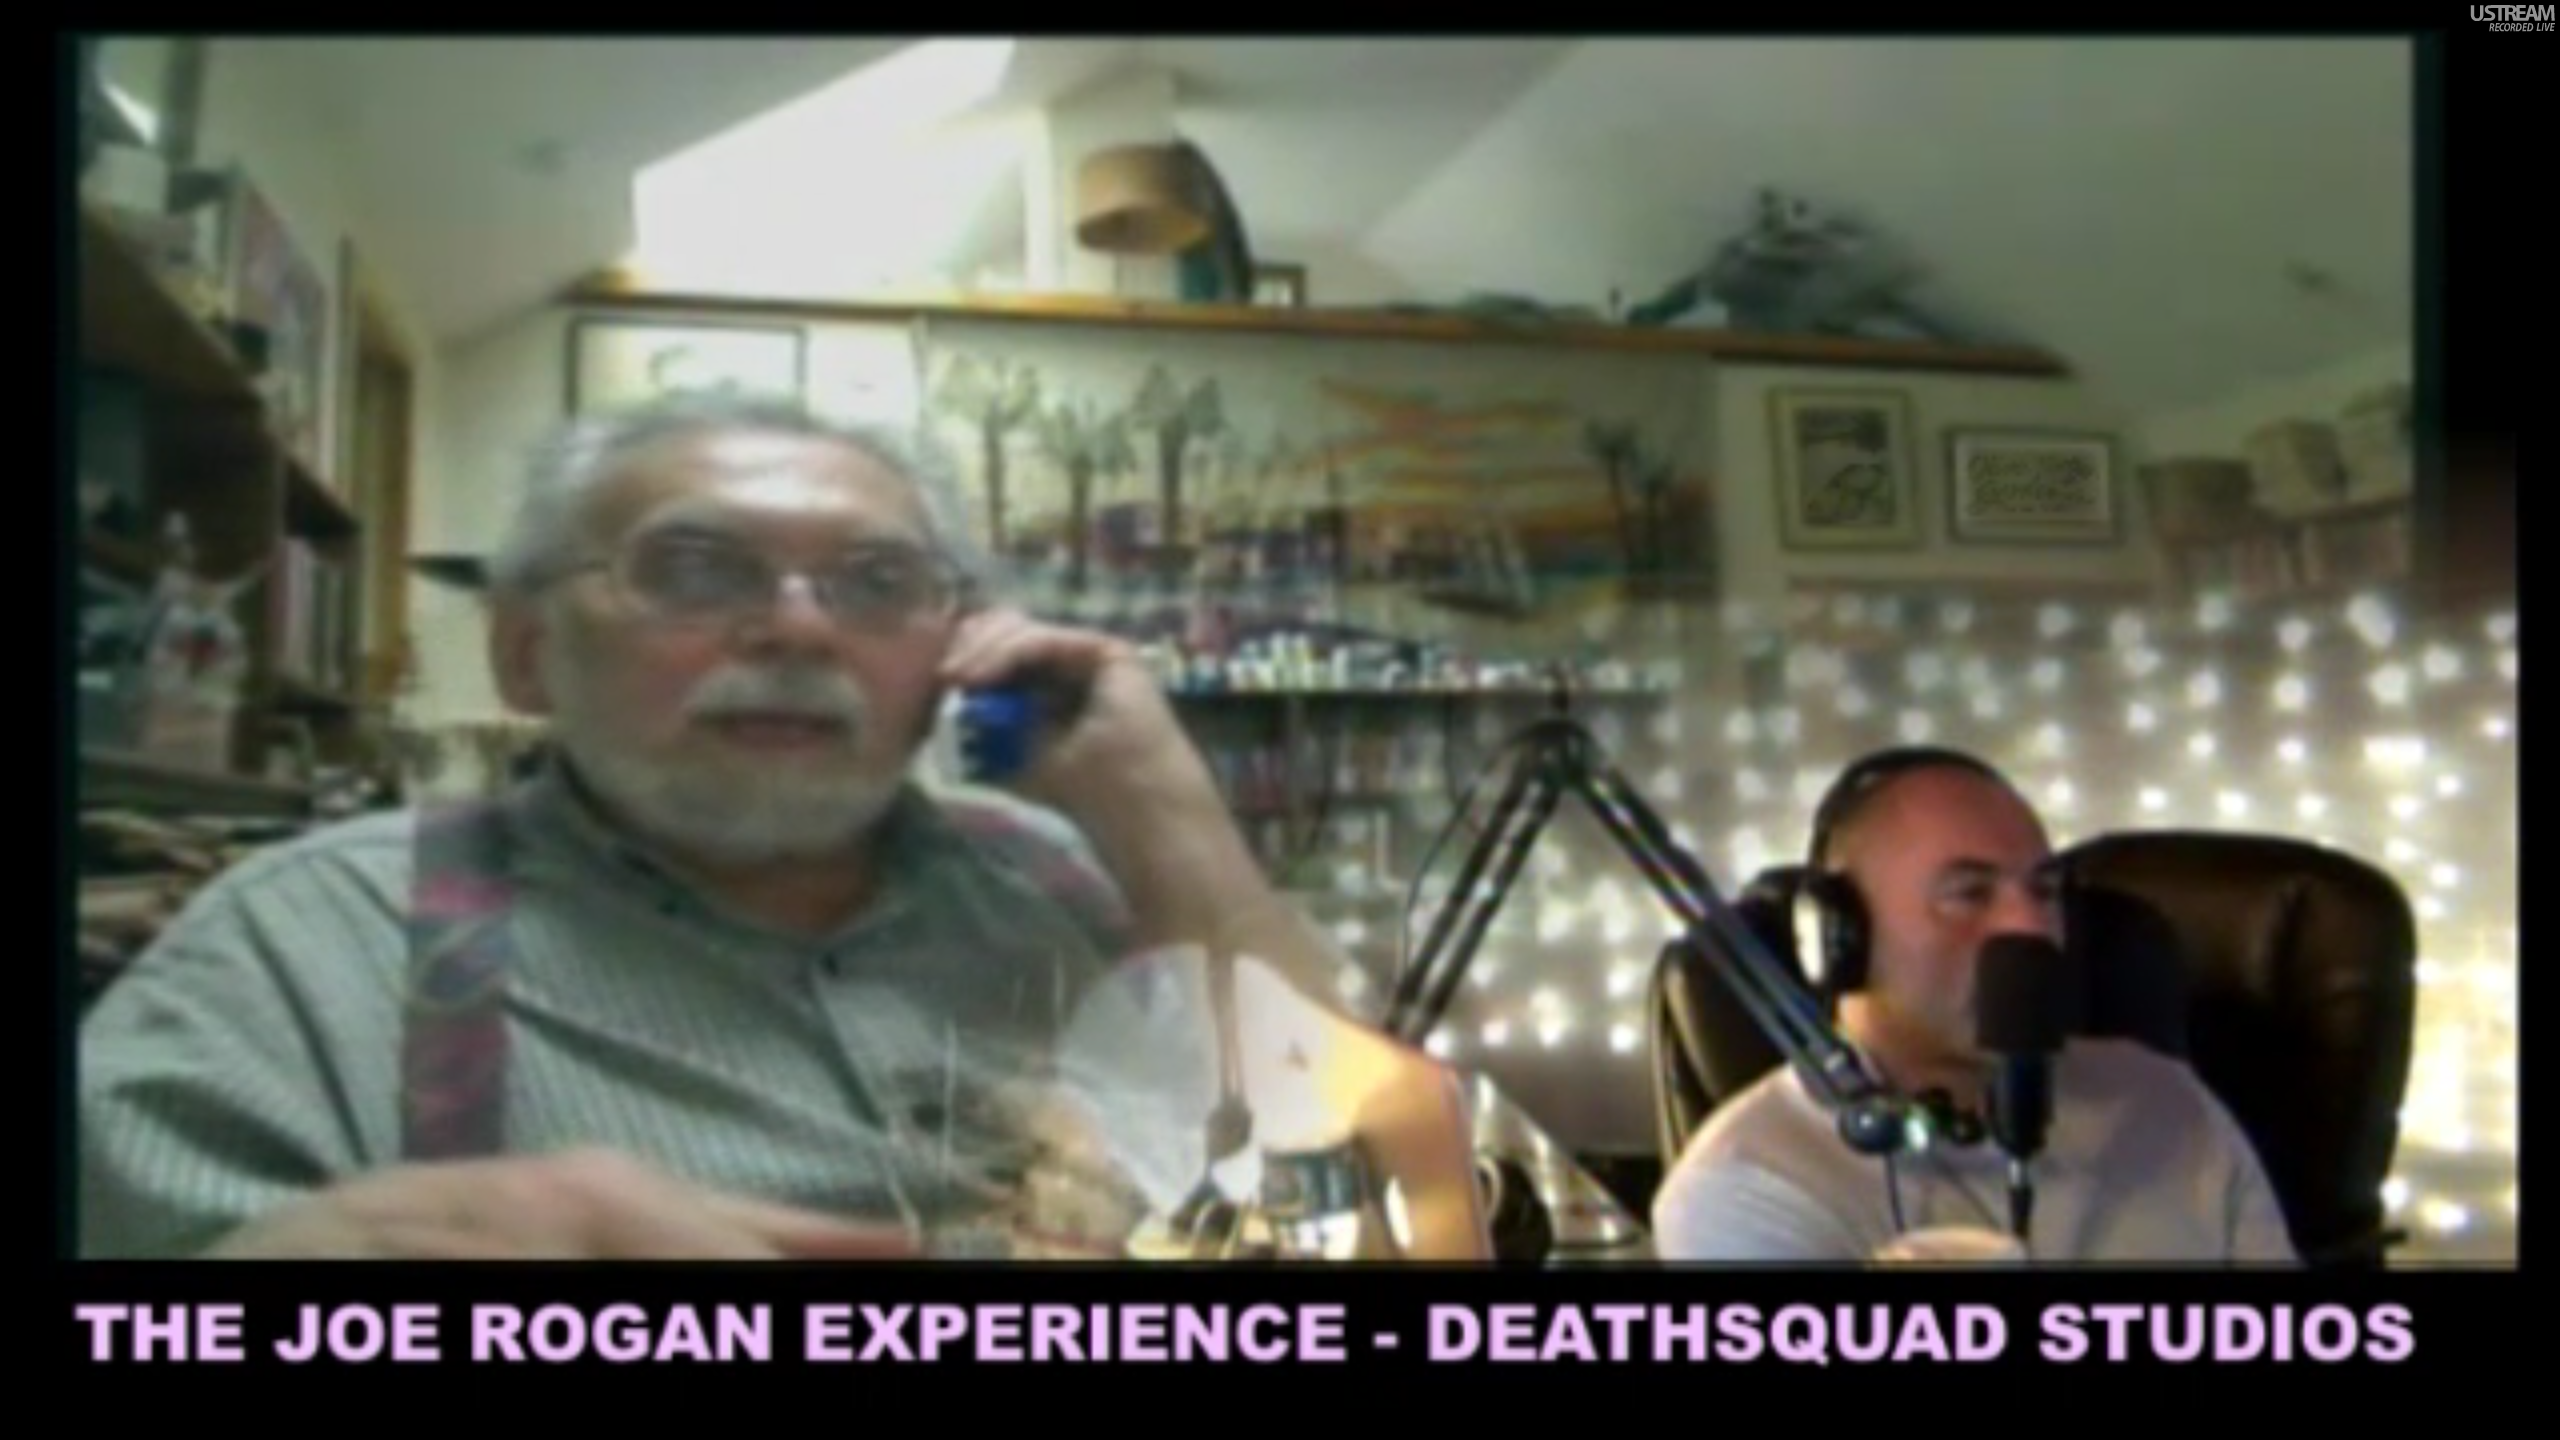 The Joe Rogan Experience #226 - John Anthony West, Brian Redban